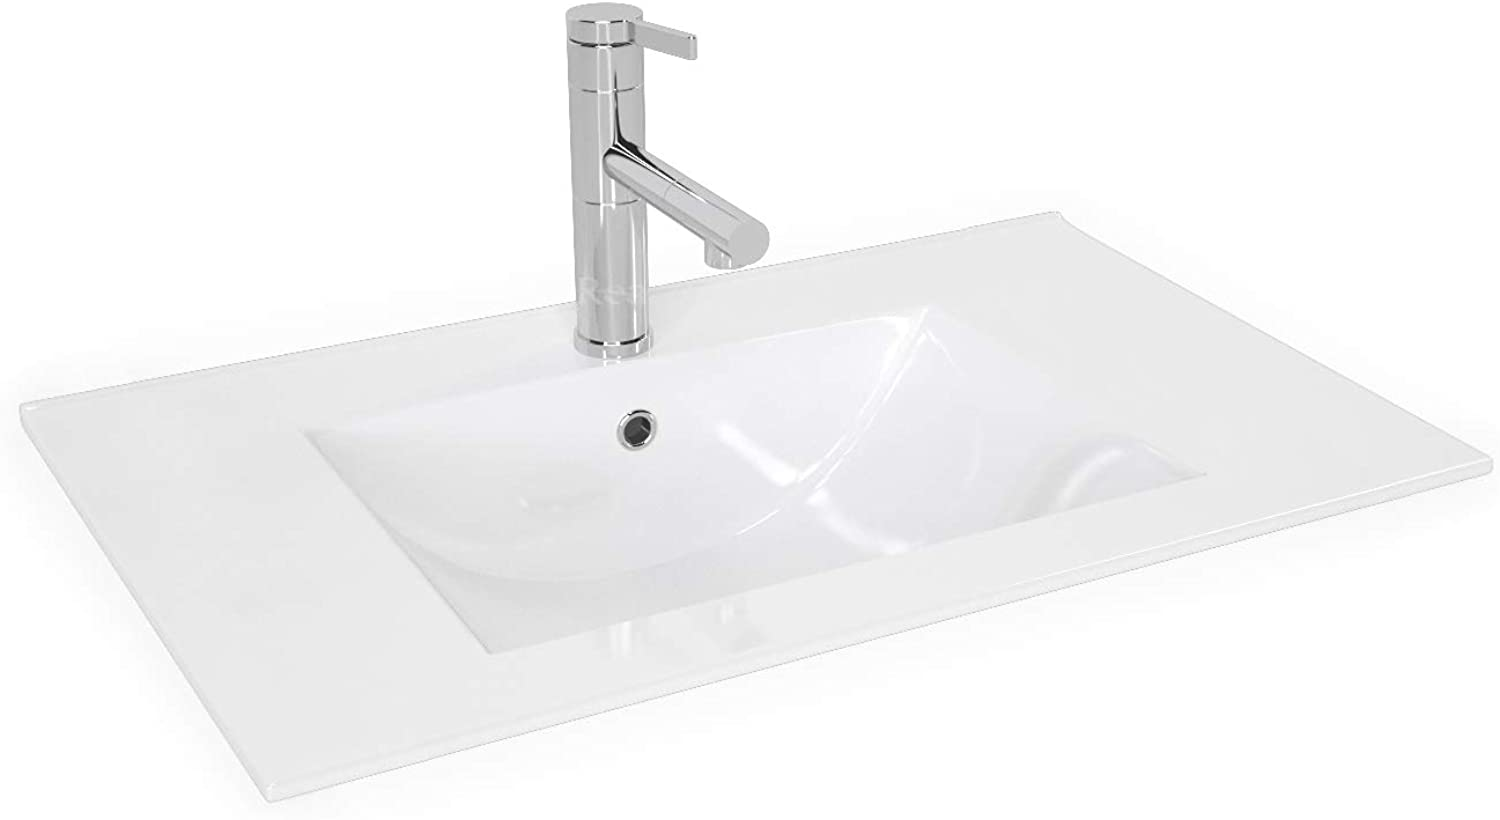 White Rectangular Ceramic Basin Bowl   Counter Top Vessel REA Dafne 70  with Overflow and Tap Hole (715 x 465 x 167 mm)